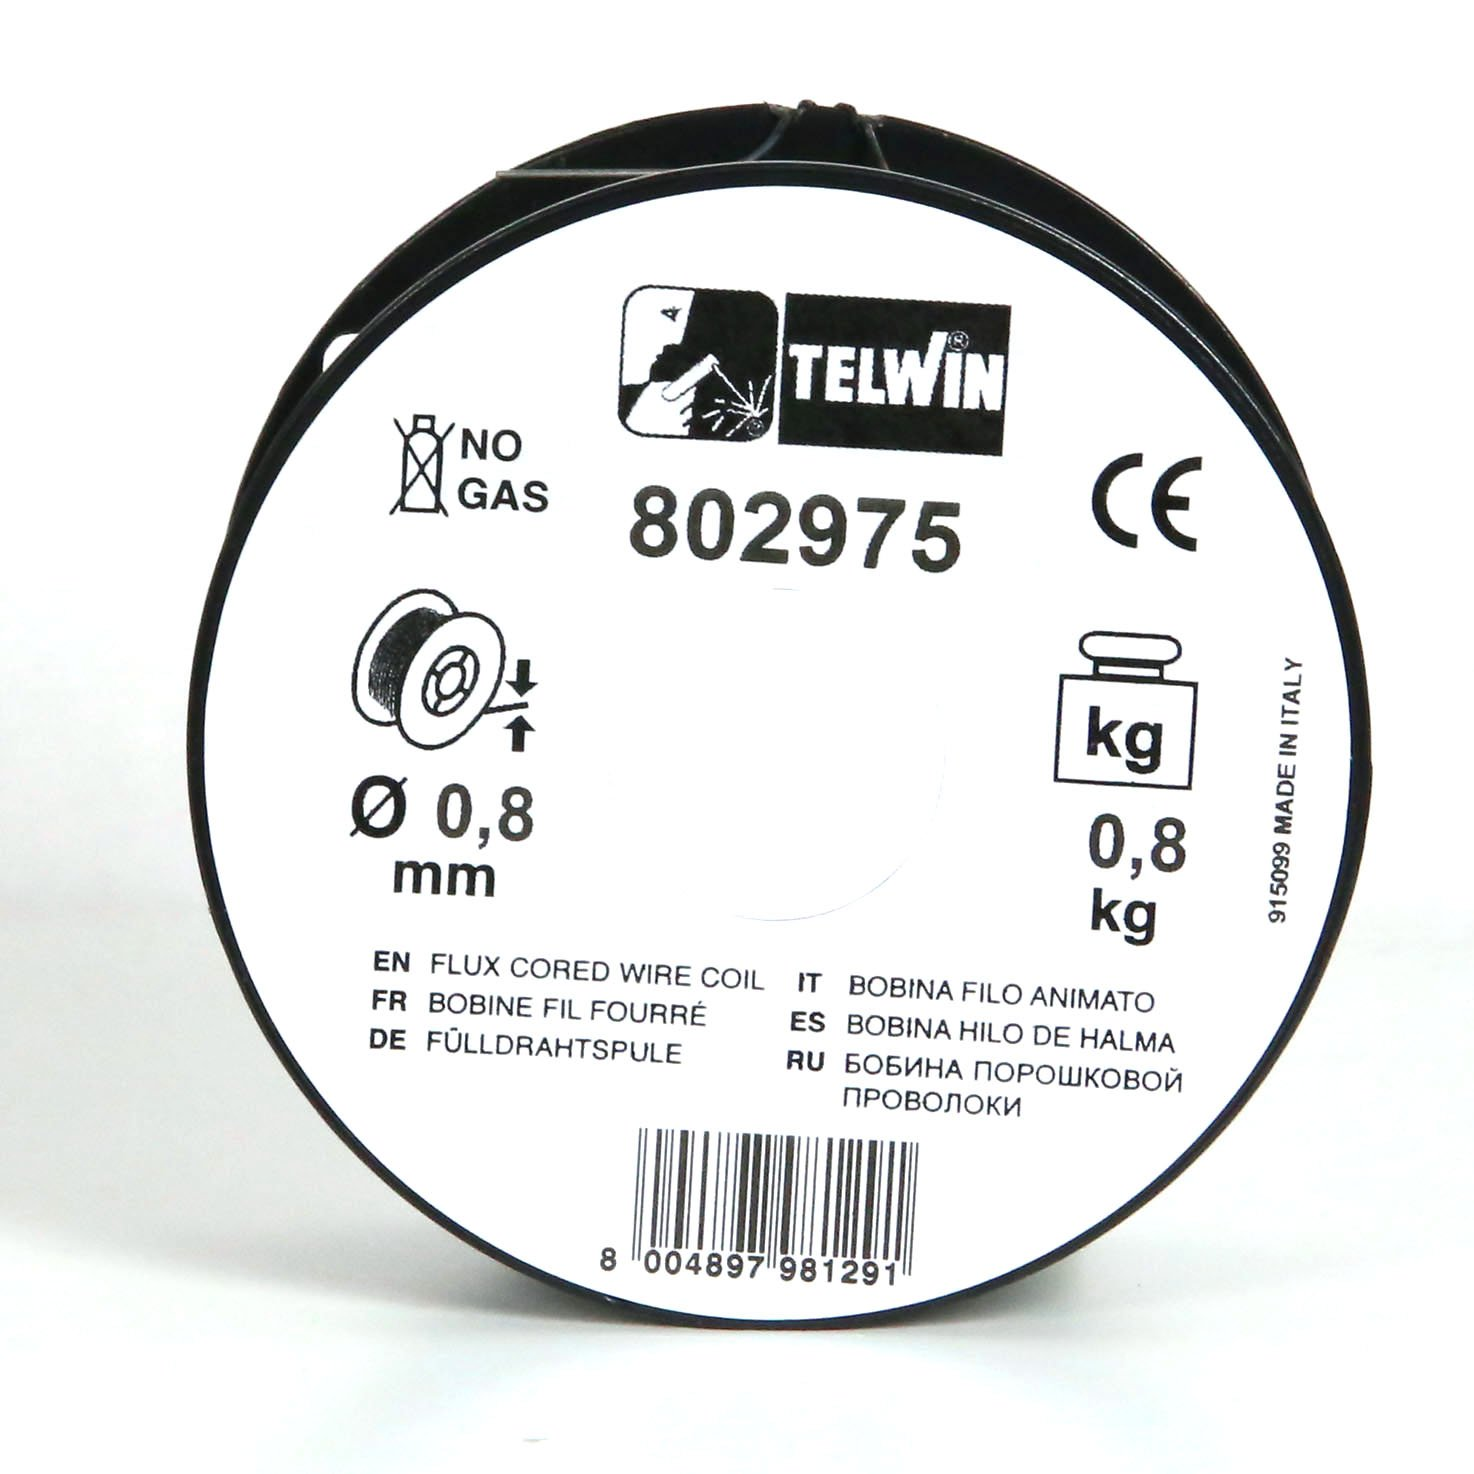 Telwin 802975 Animated Wire Spool For Soldering 08 Mm Kg Wiring Switch Bathroom Faa Welcome